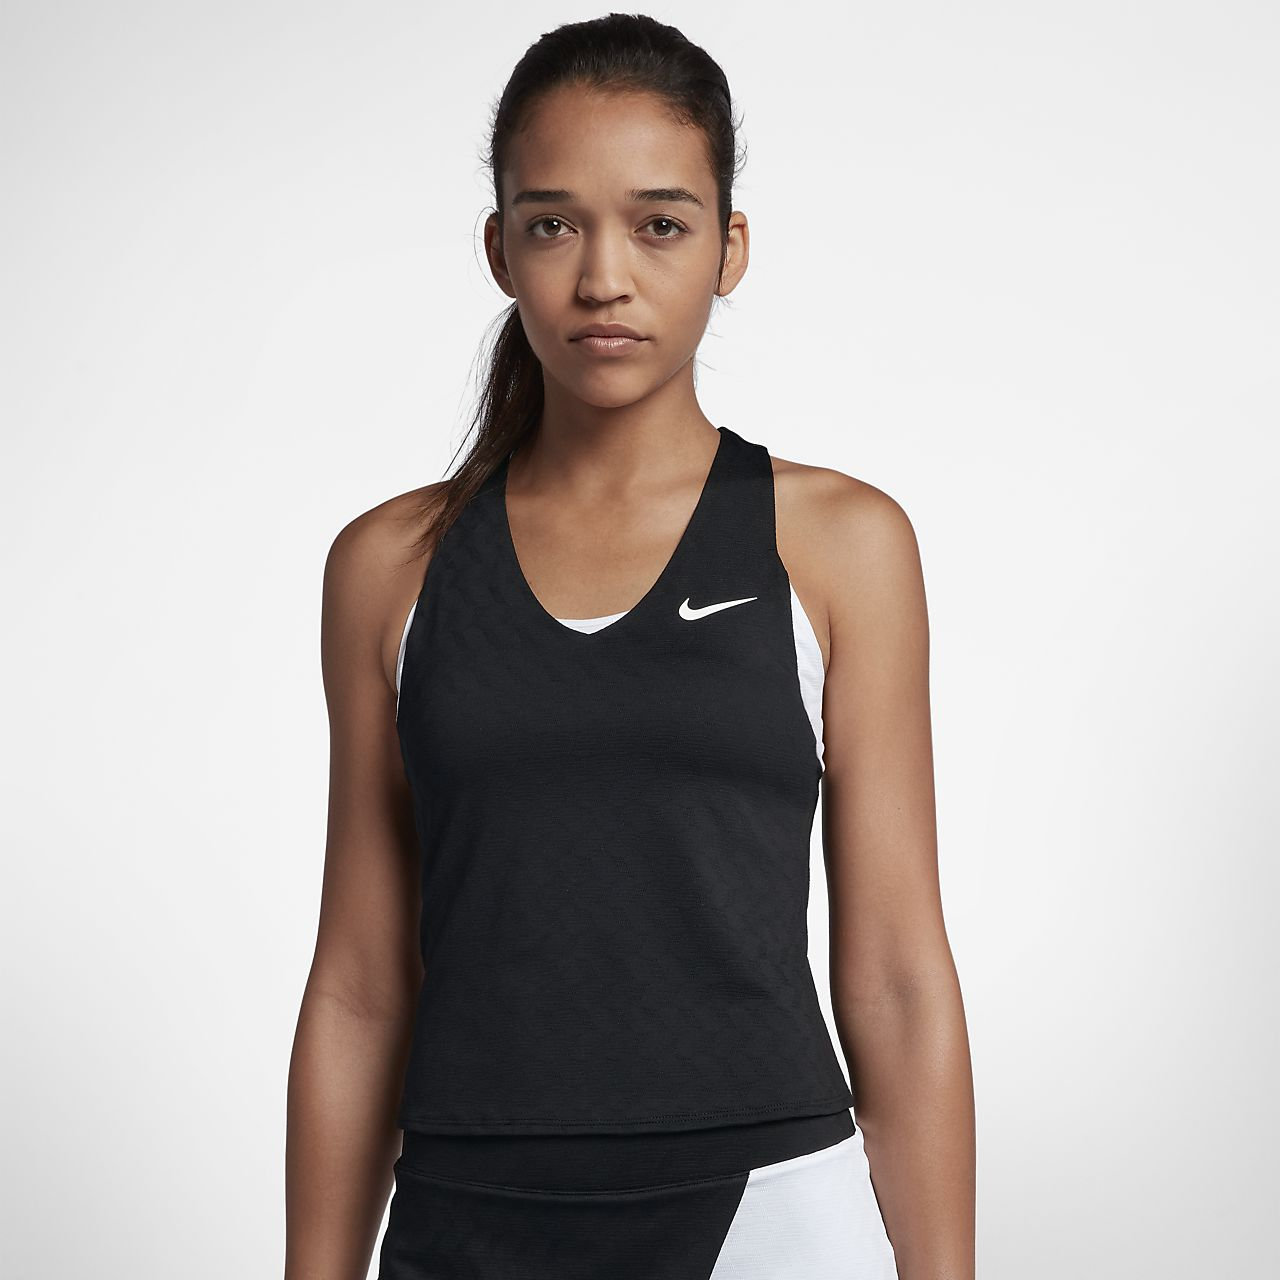 Maria Slam Women's Tennis Top